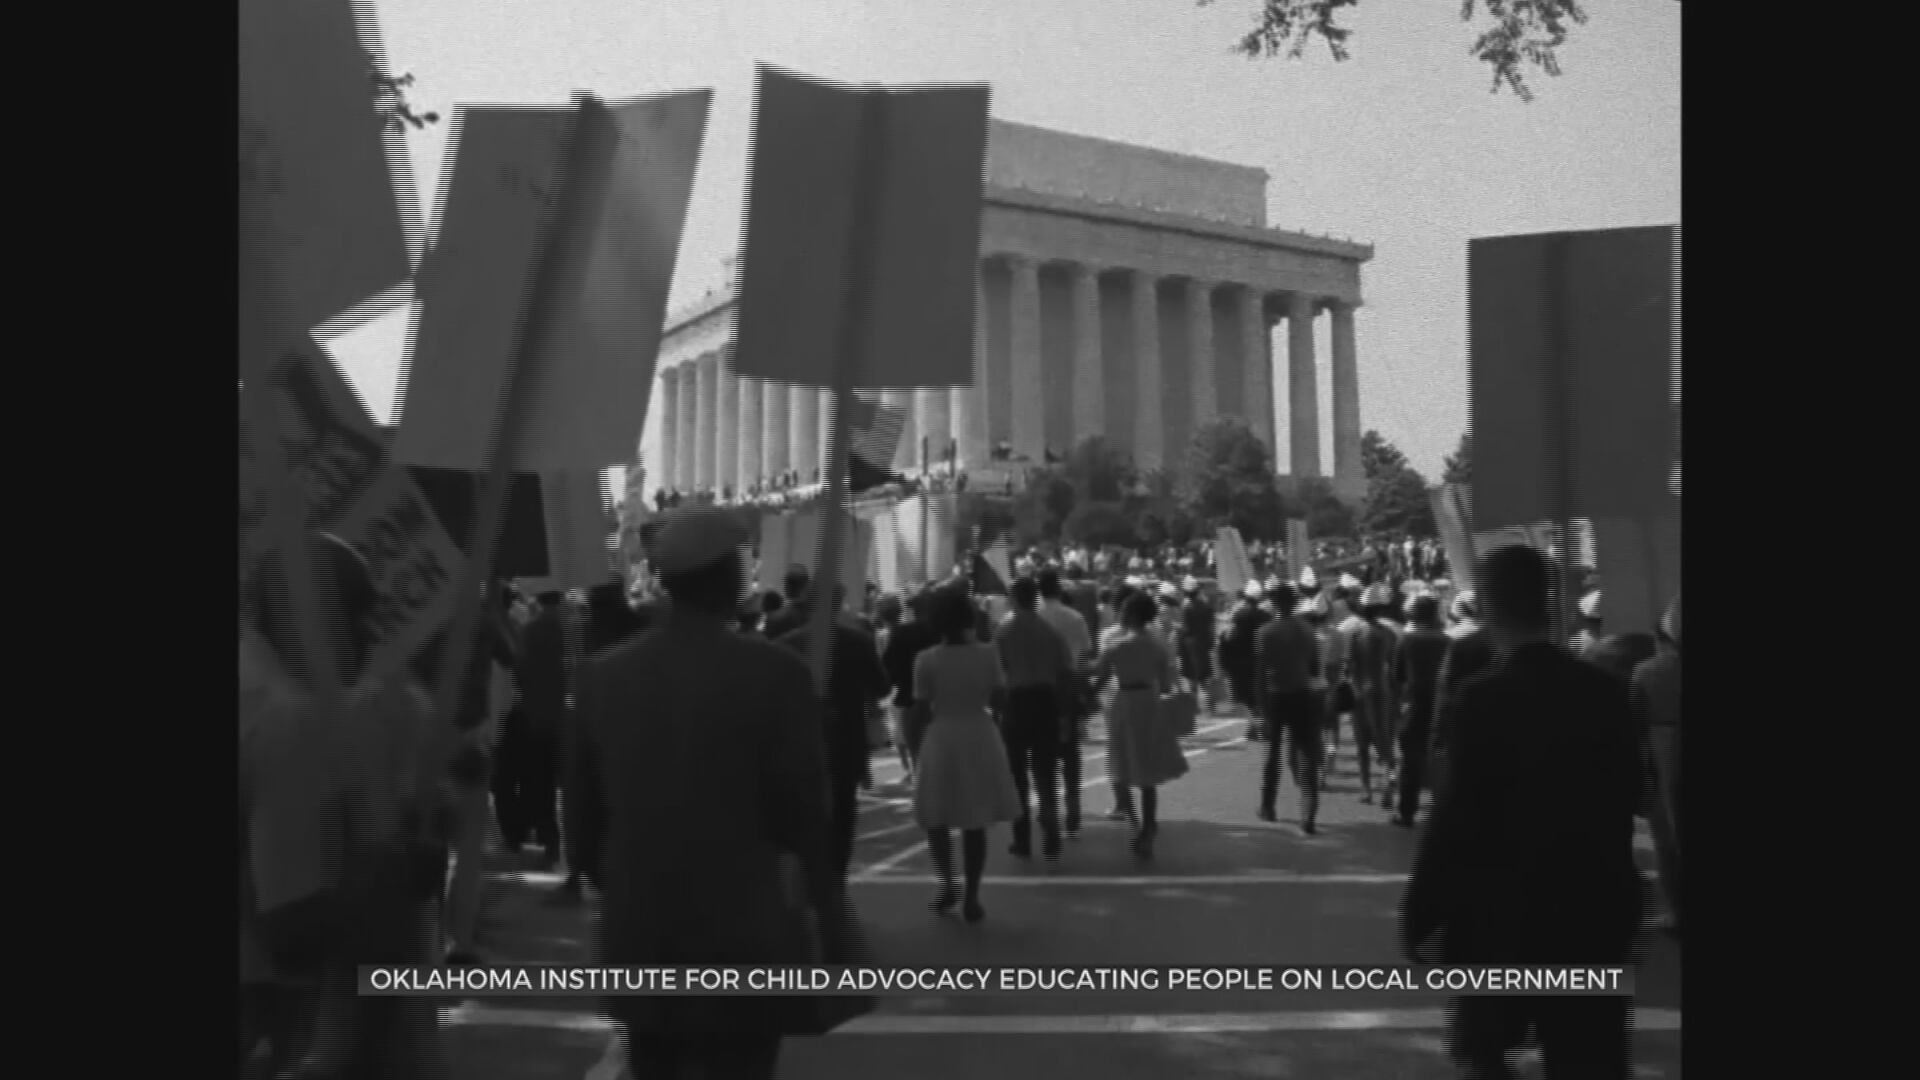 Honoring Dr. King, Oklahoma Organization Educates People To Advocate For Better Future